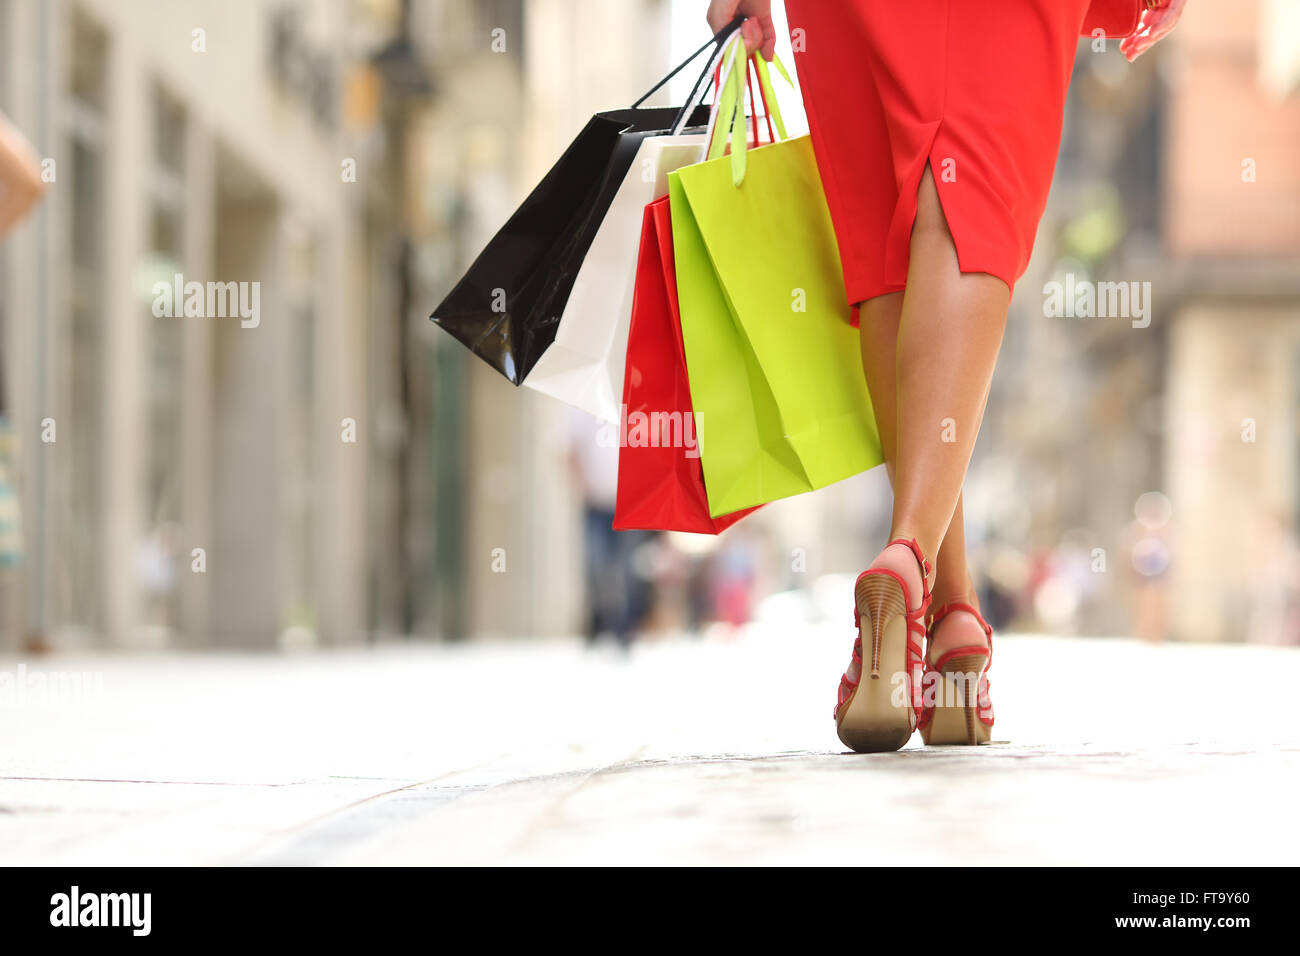 Back view of a fashion shopper woman legs walking with colorful shopping bags in the street - Stock Image